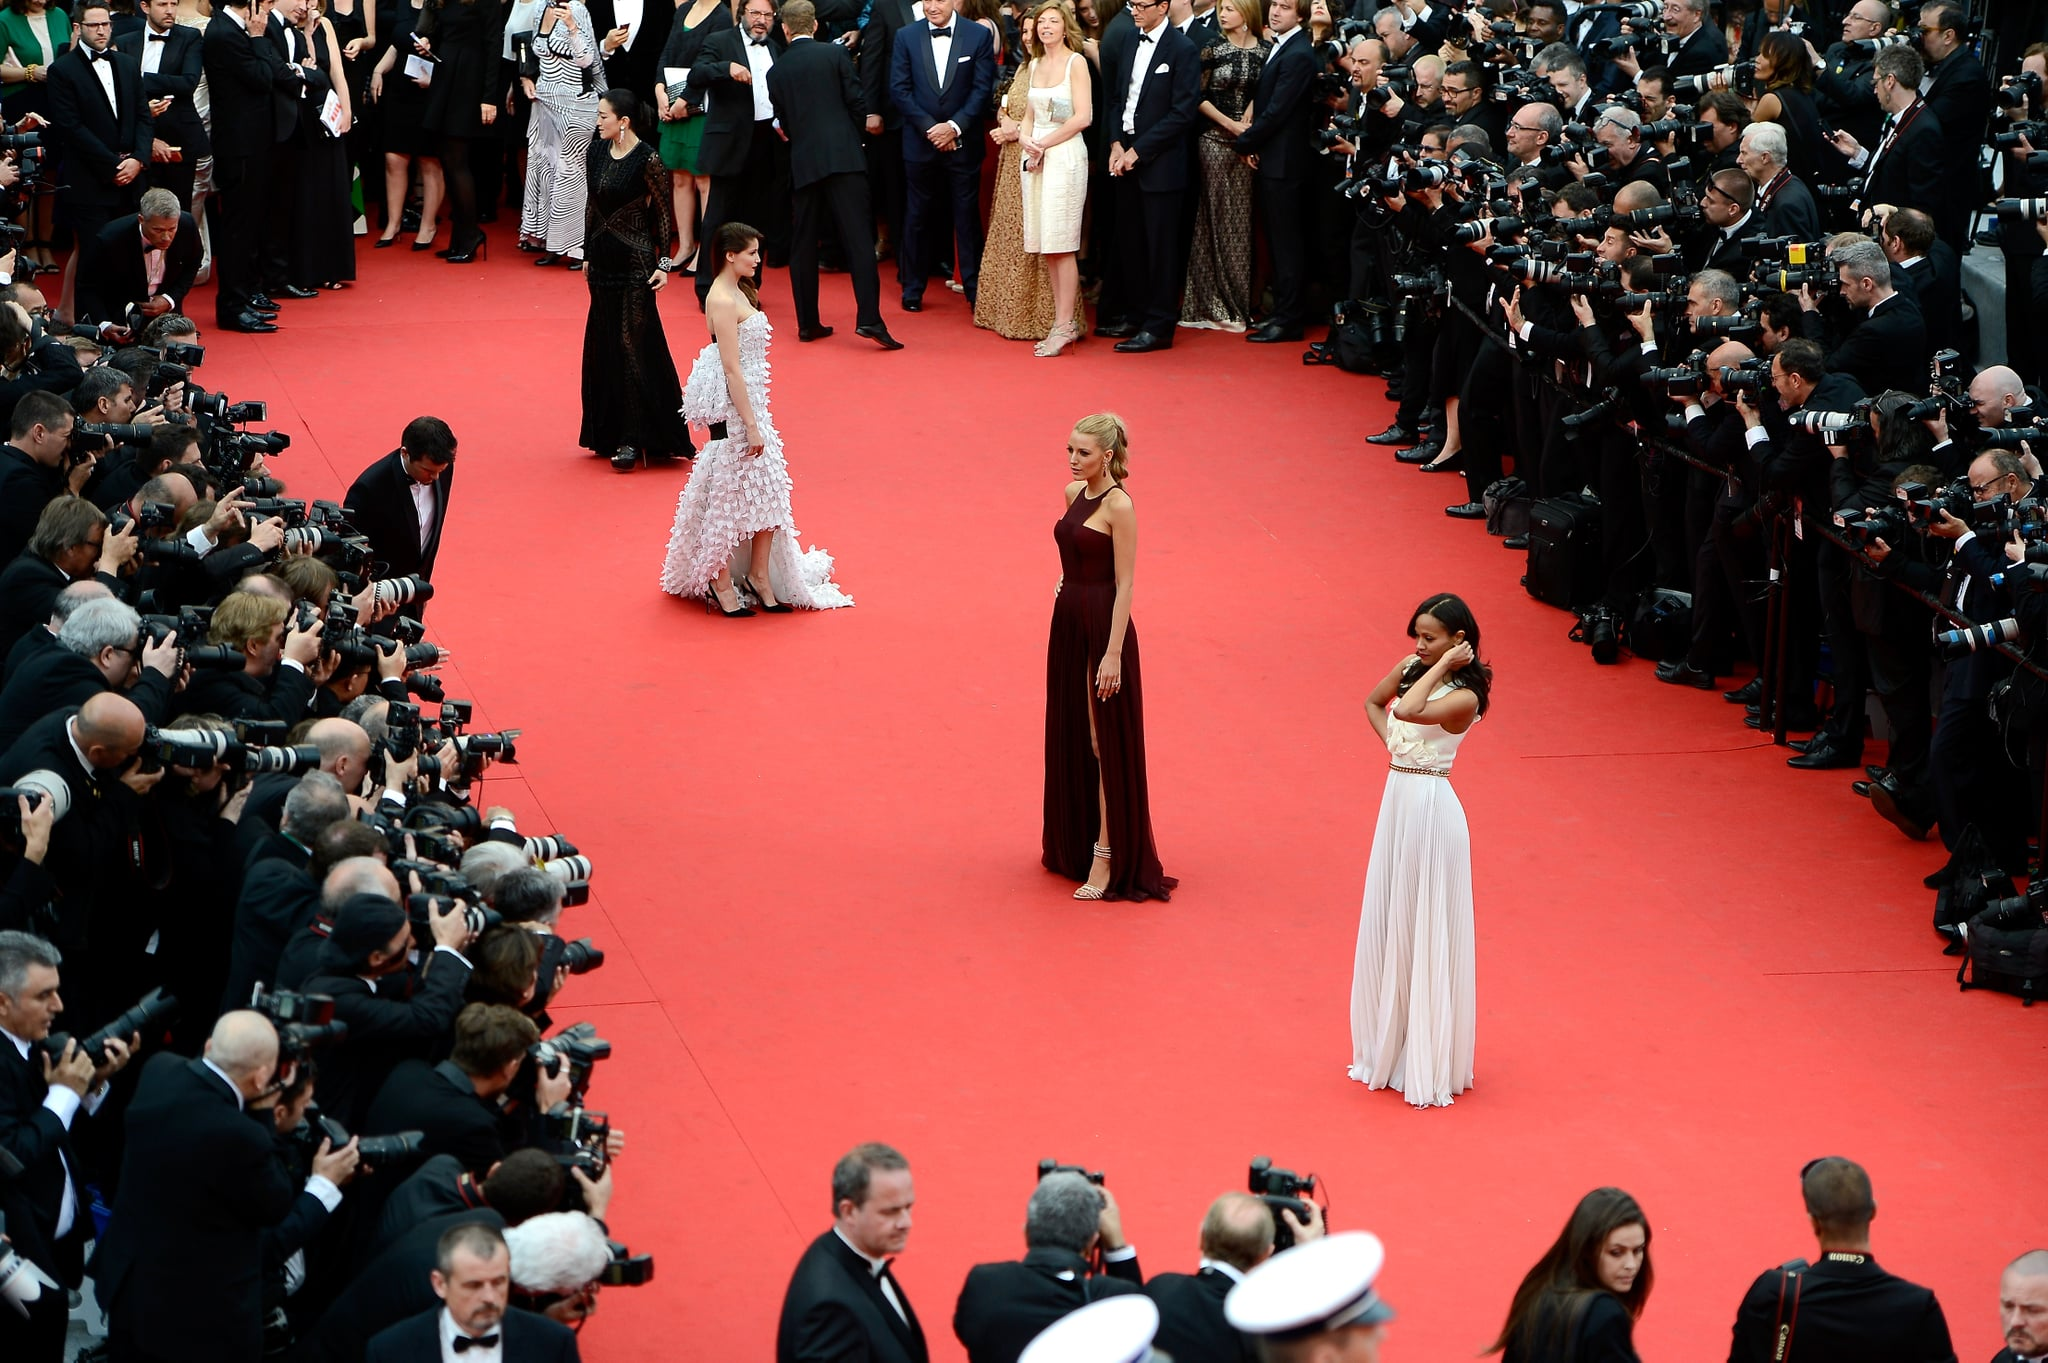 Laetitia Casta, Blake Lively, and Zoe Saldana were surrounded by cameras on the red carpet.